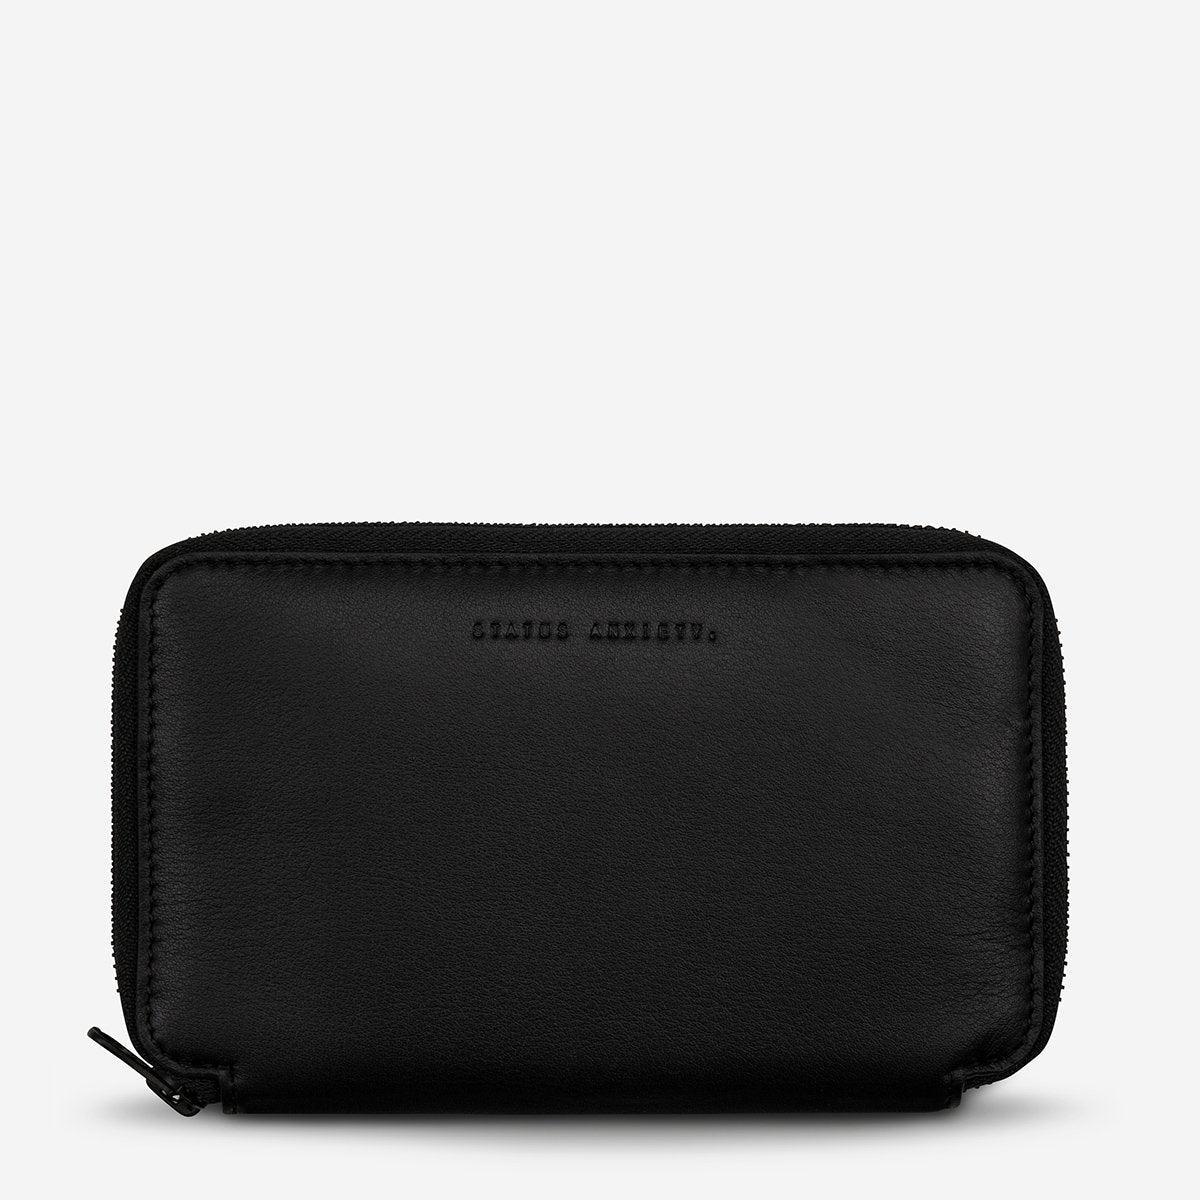 Vow Travel Wallet Black